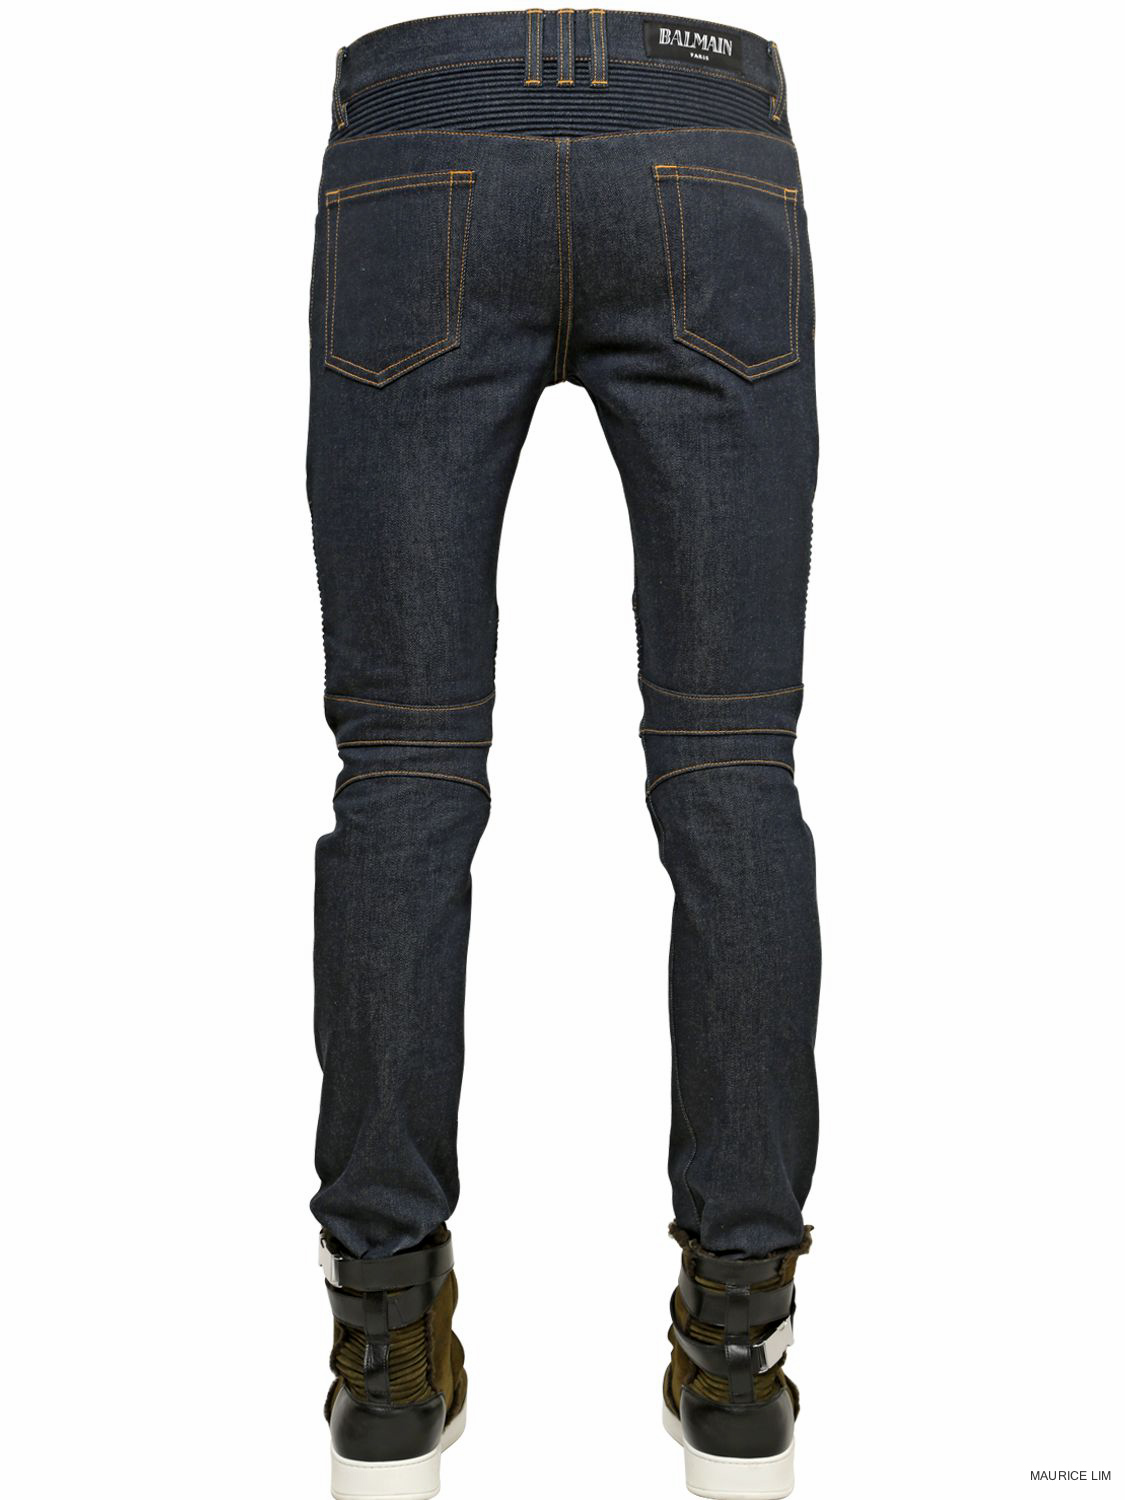 a8bb3d43 Balmain – Balmain Raw Stretch Slim Biker Jeans. This Biker Jeans,  embellished with ribbed panels, is one of Balmain most popular styles.